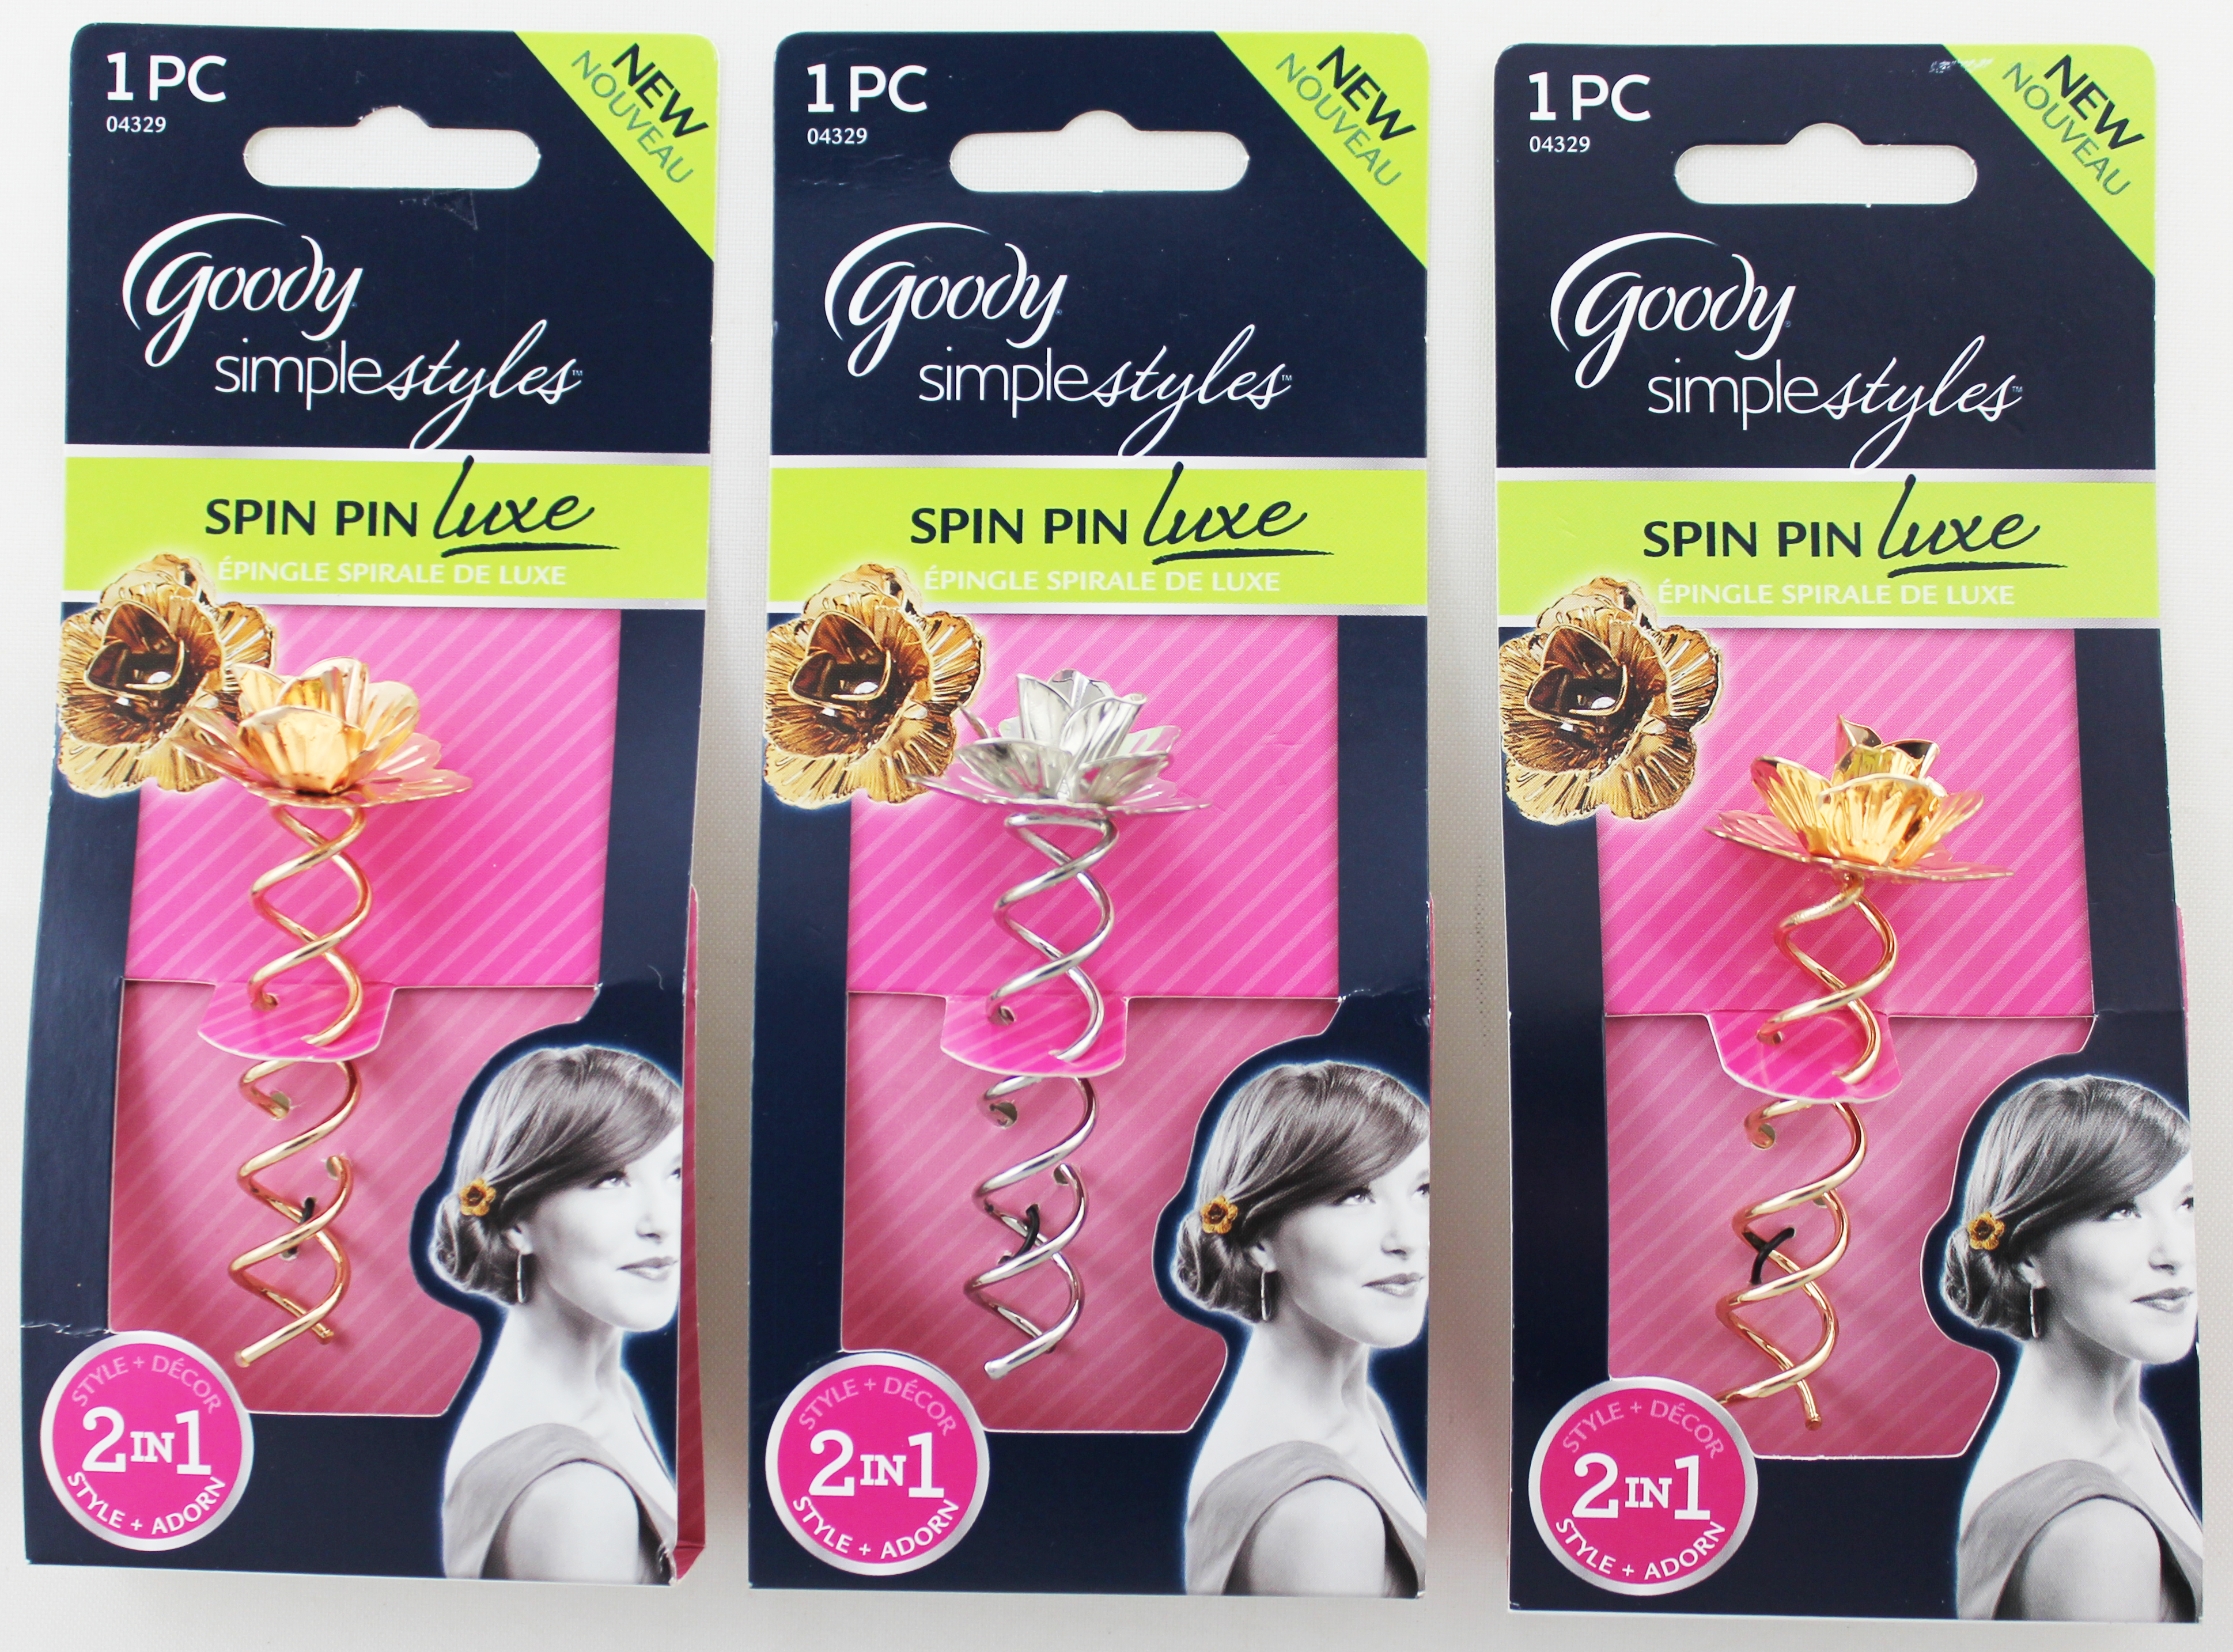 Goody Simple Styles Gold & Silver Spin Pin Luxe 2in1 - 1 Count